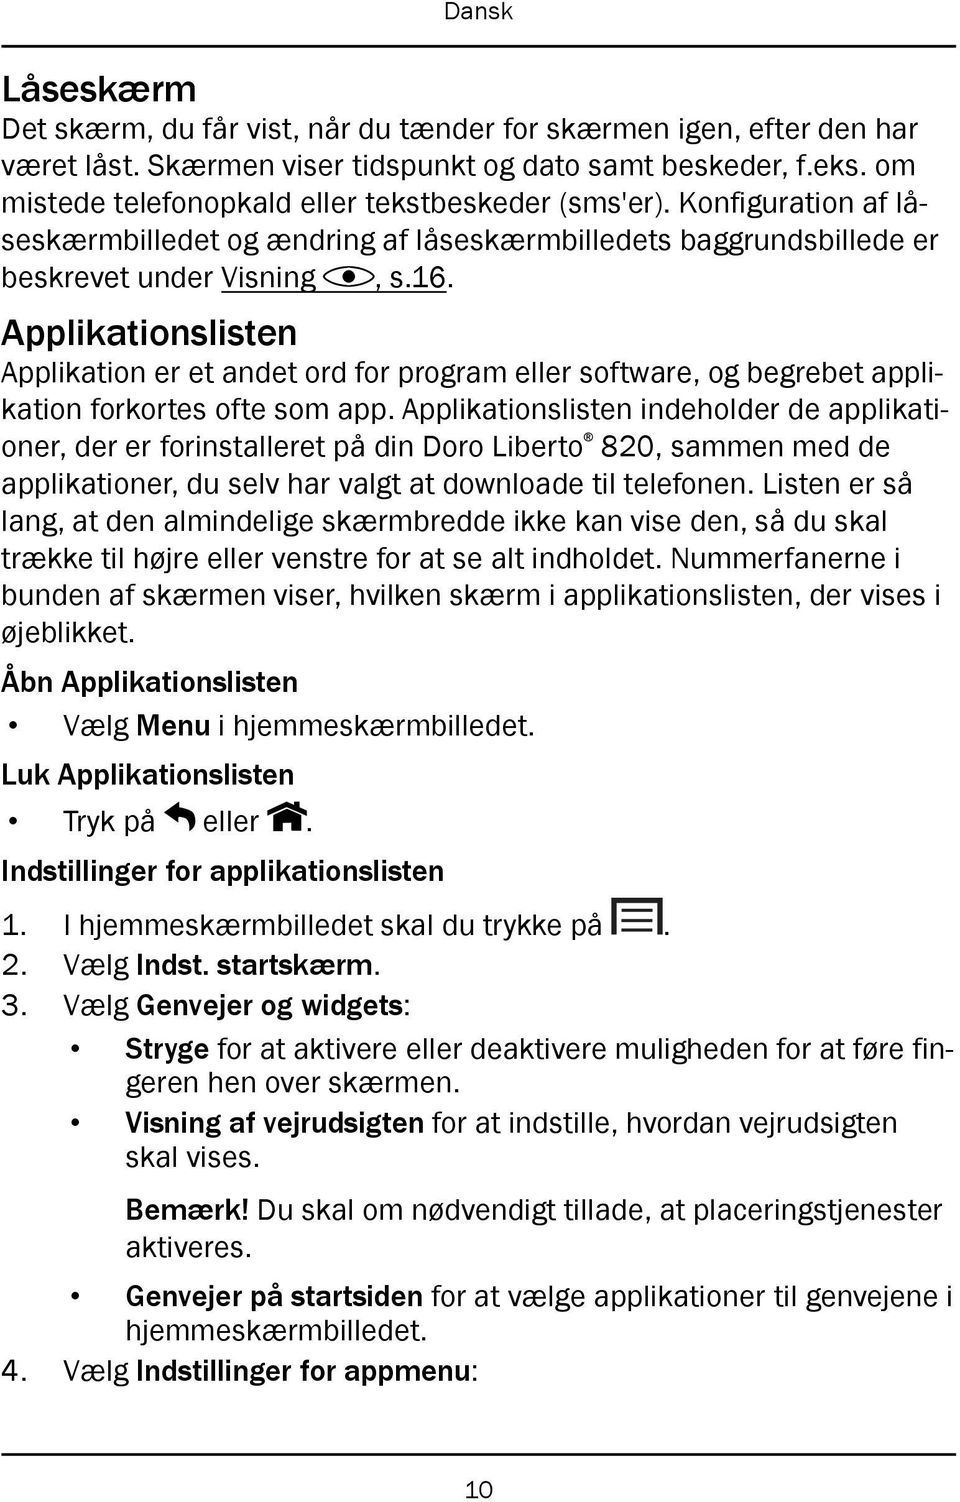 Applikationslisten Applikation er et andet ord for program eller software, og begrebet applikation forkortes ofte som app.